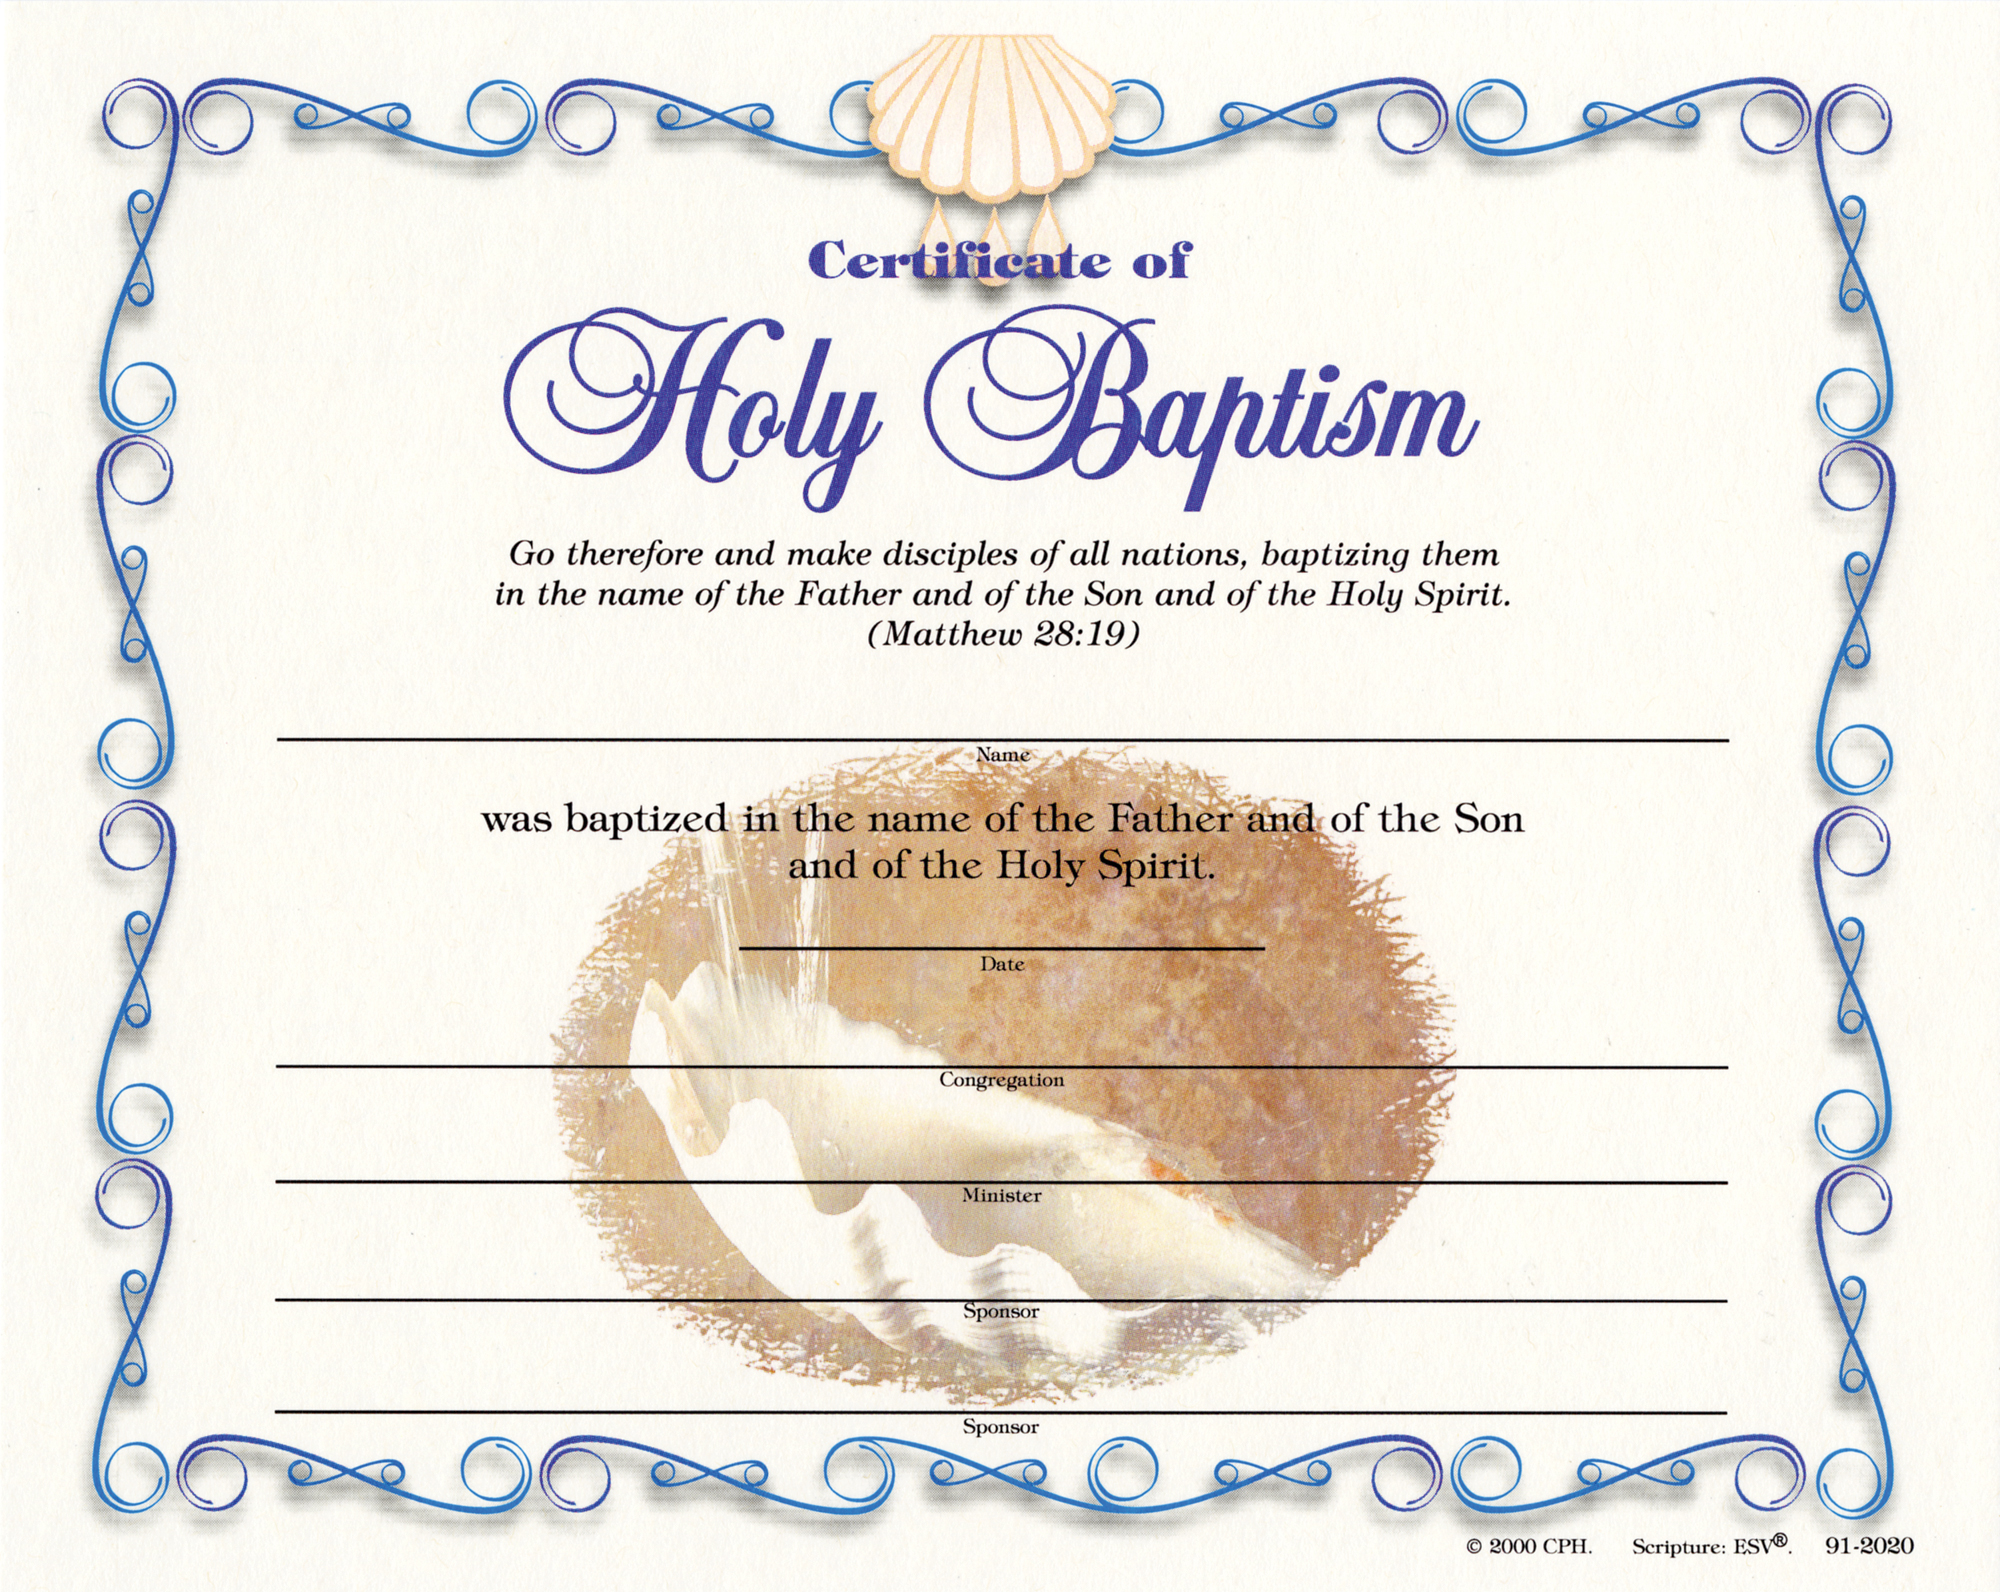 Adult baptism certificates was and